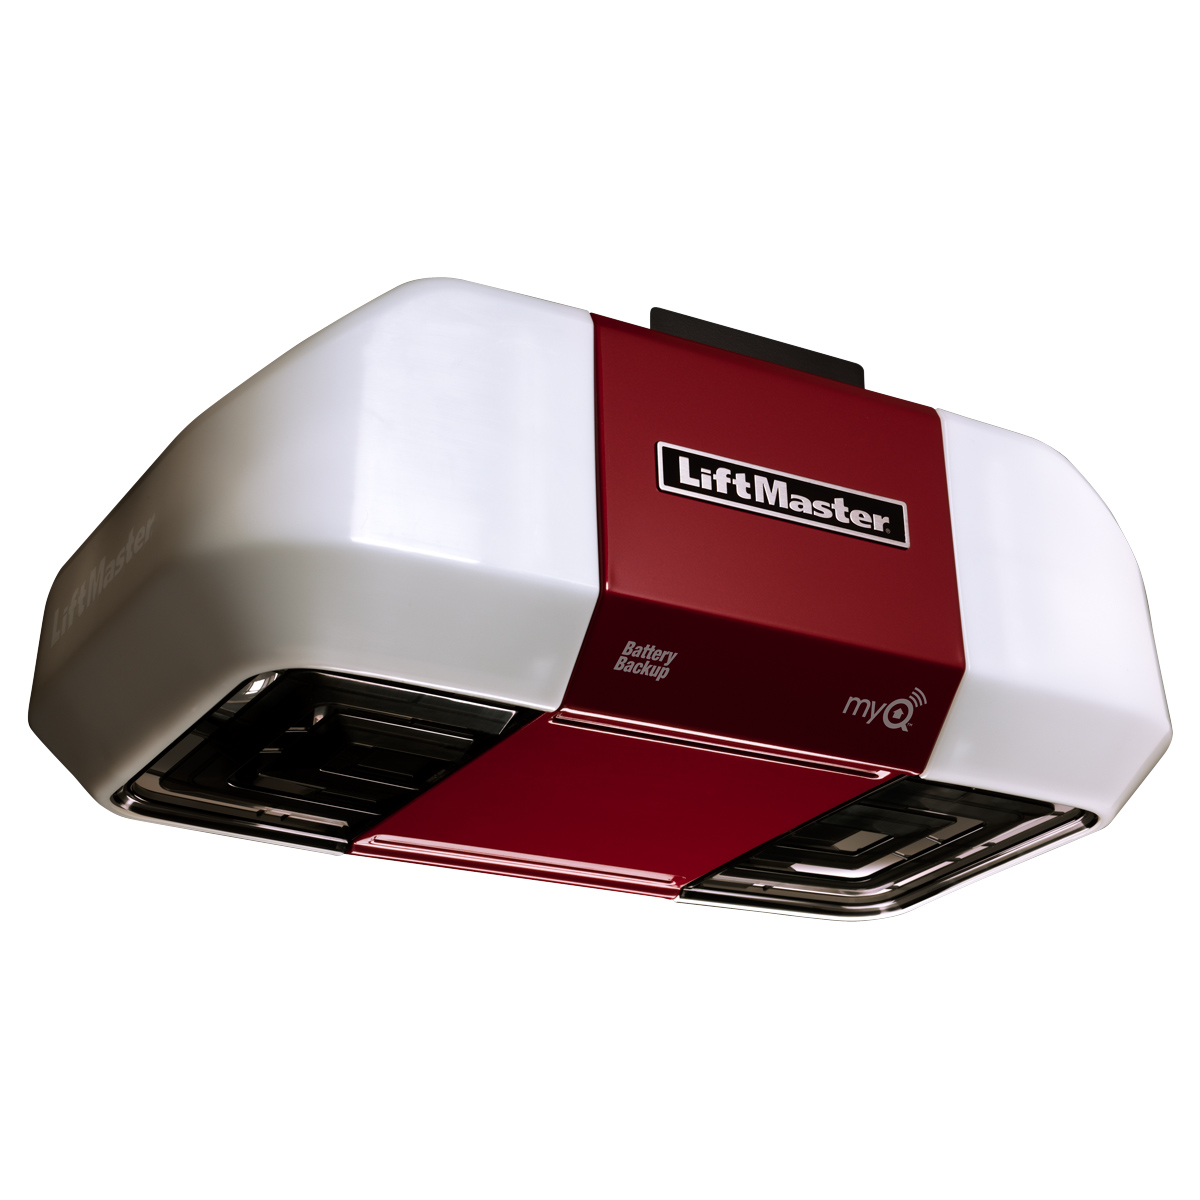 liftmaster opener 123 - Garage Door Opener Repair & Installation